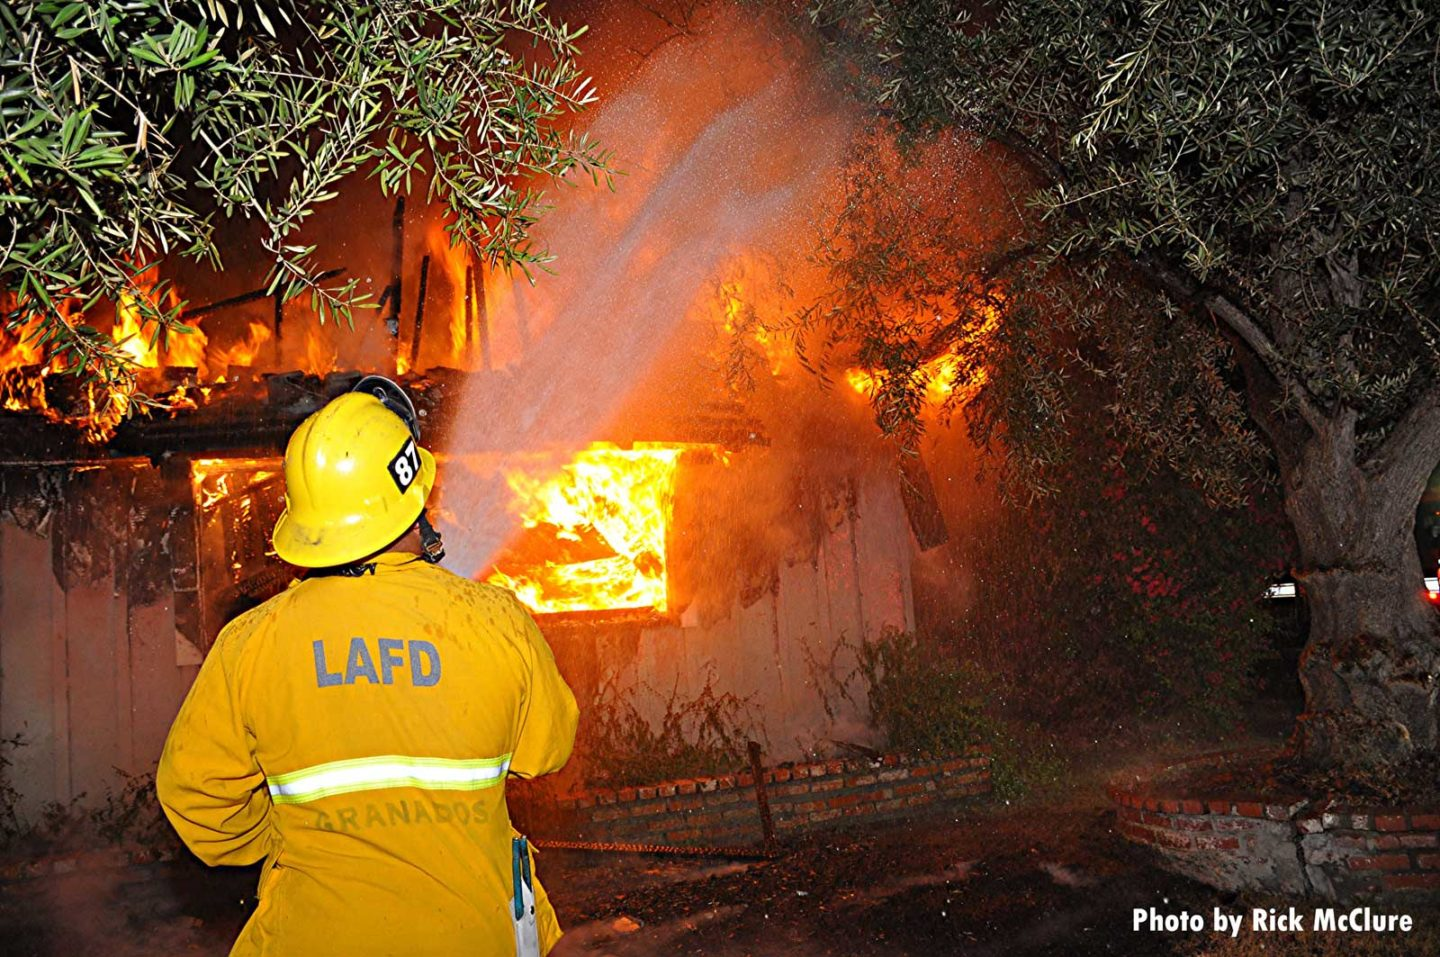 LAFD firefighter directs hose stream onto heavily involved building